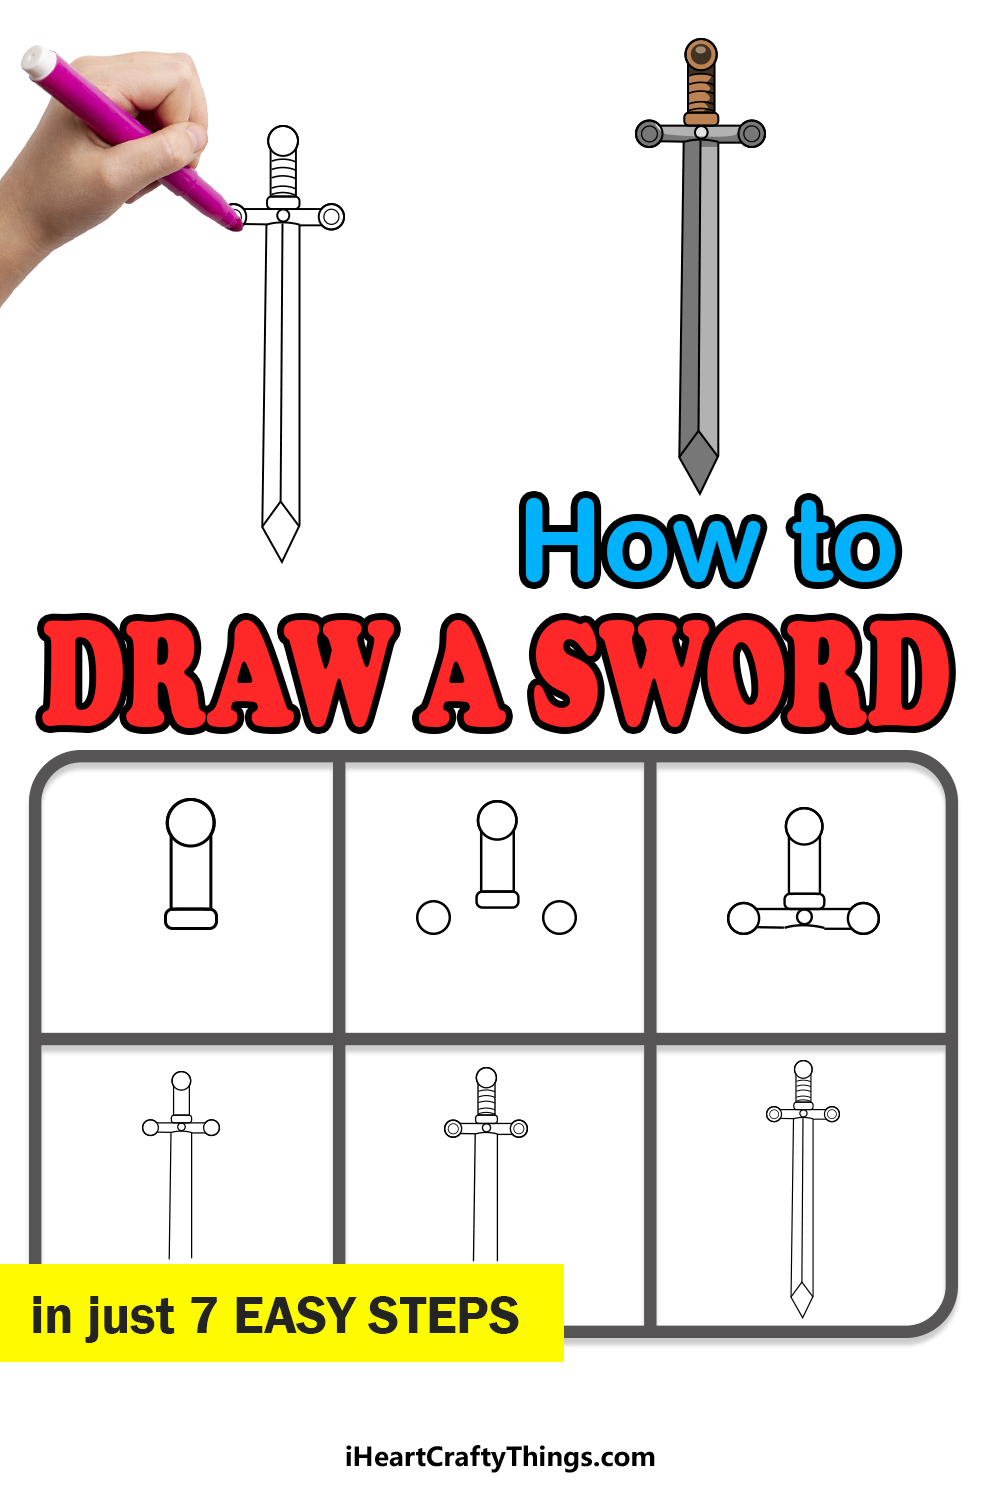 how to draw a sword in 7 easy steps